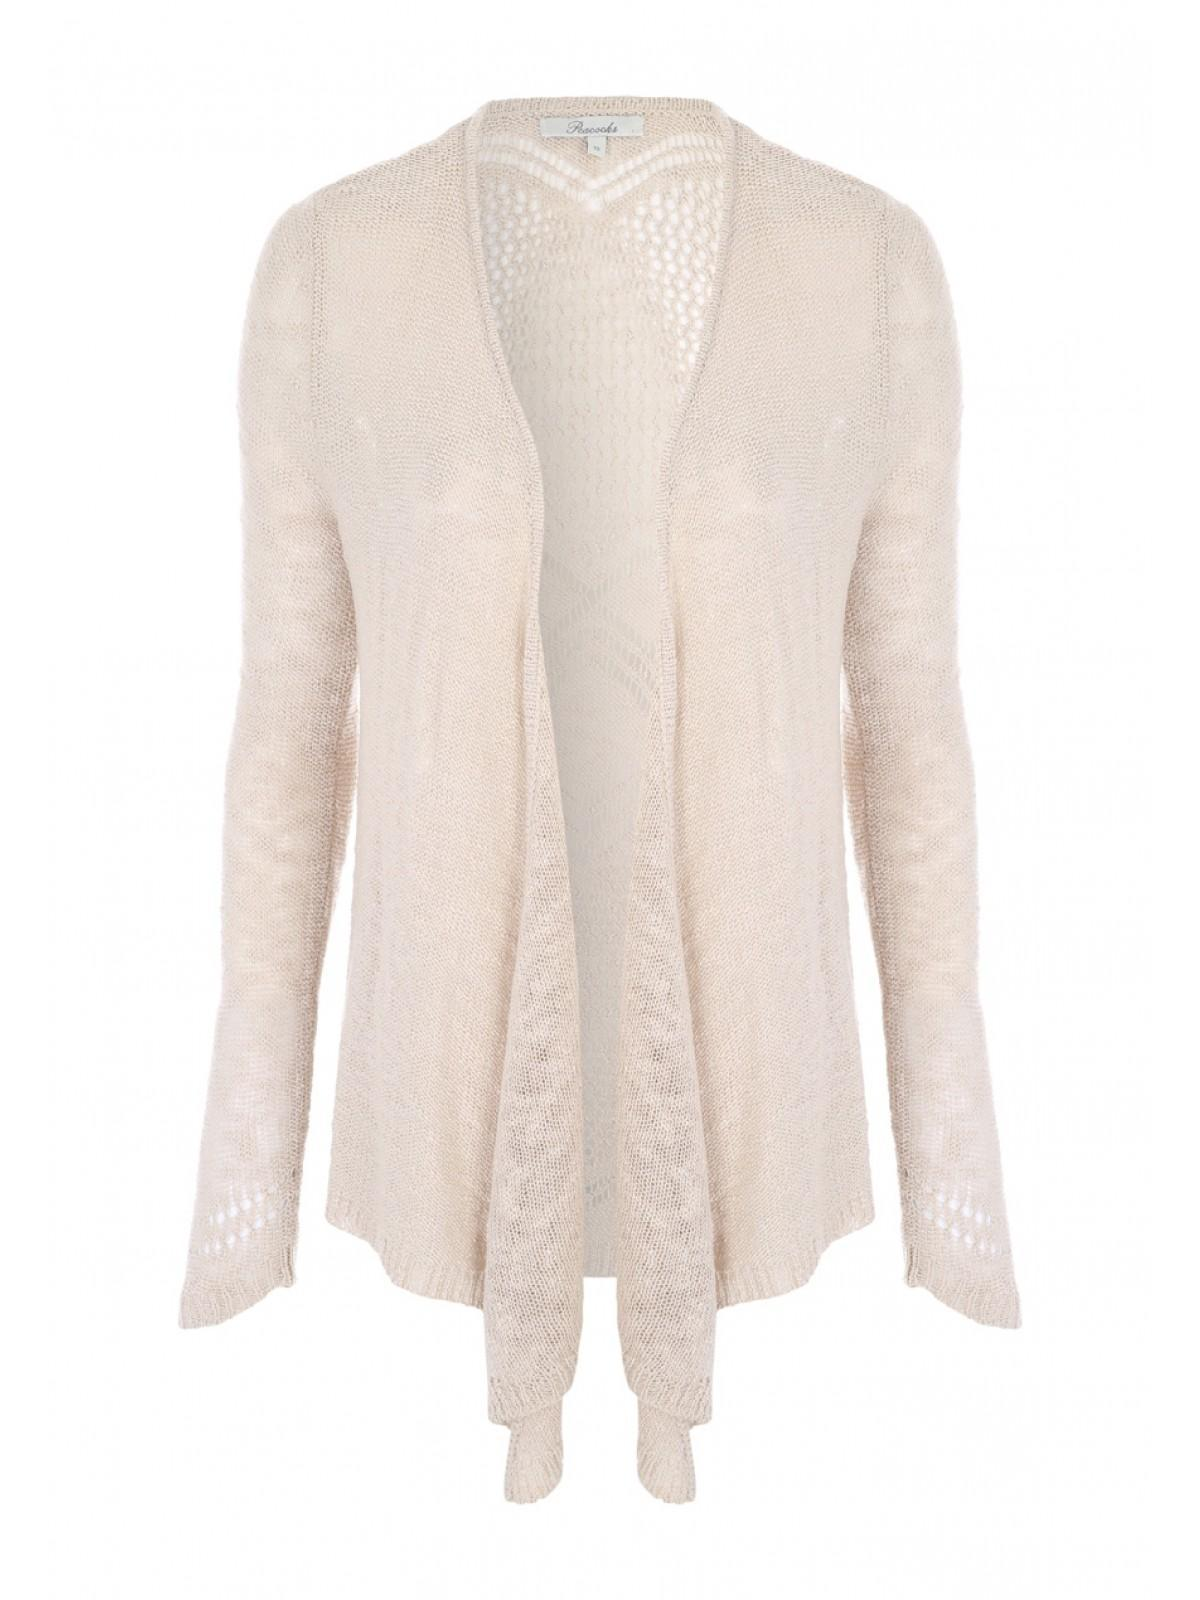 Womens Beige Waterfall Cardigan | Peacocks